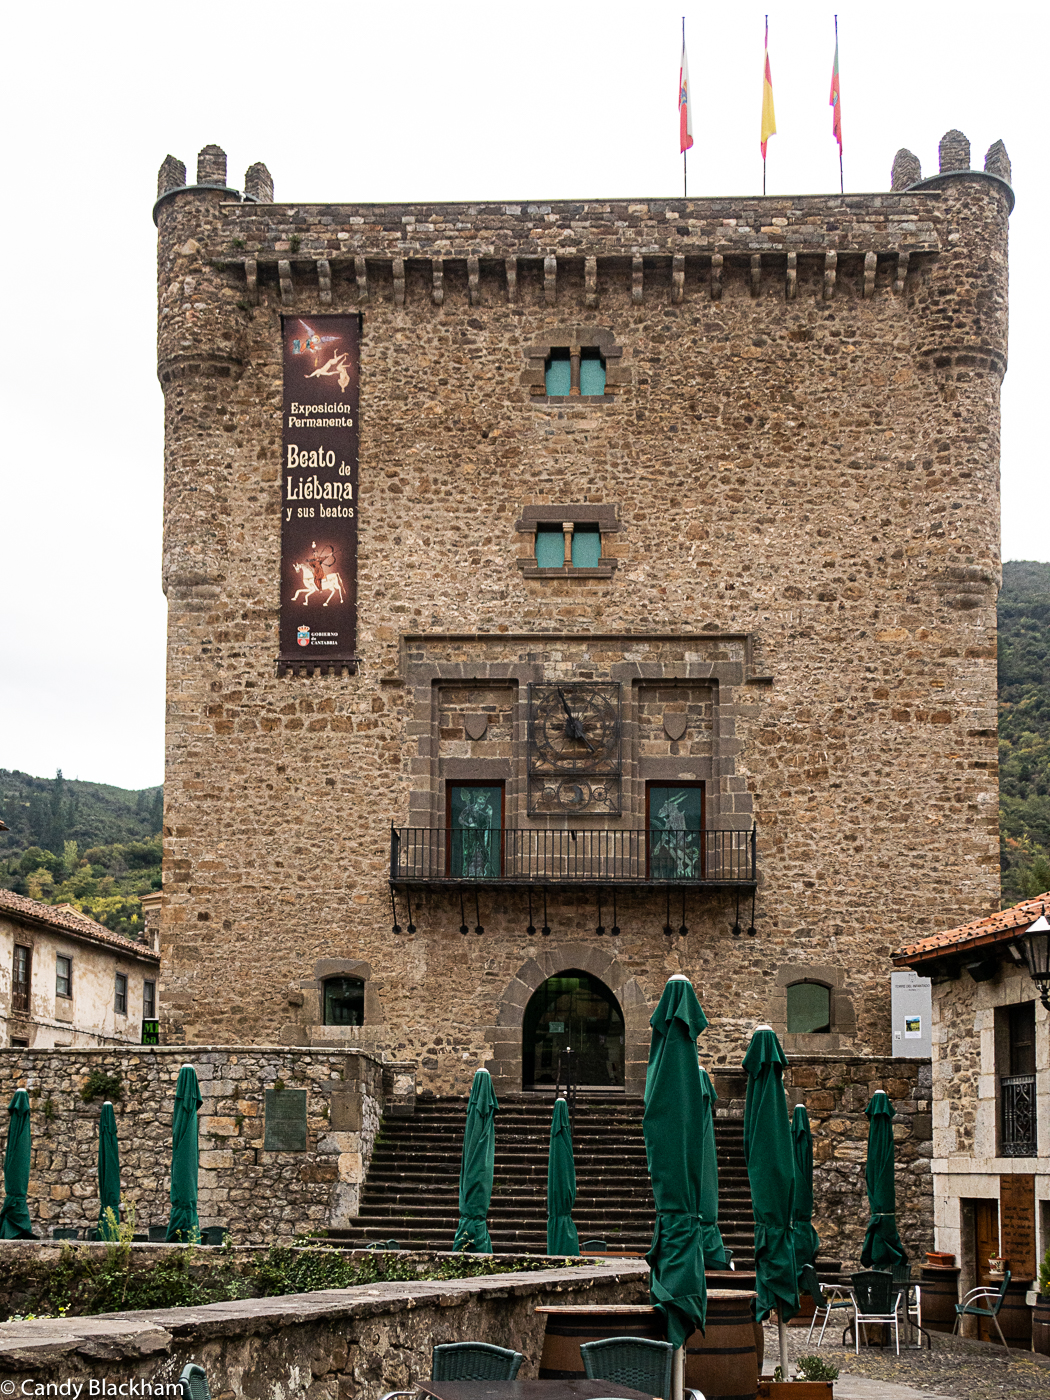 The Tower of the Inrantado in Potes